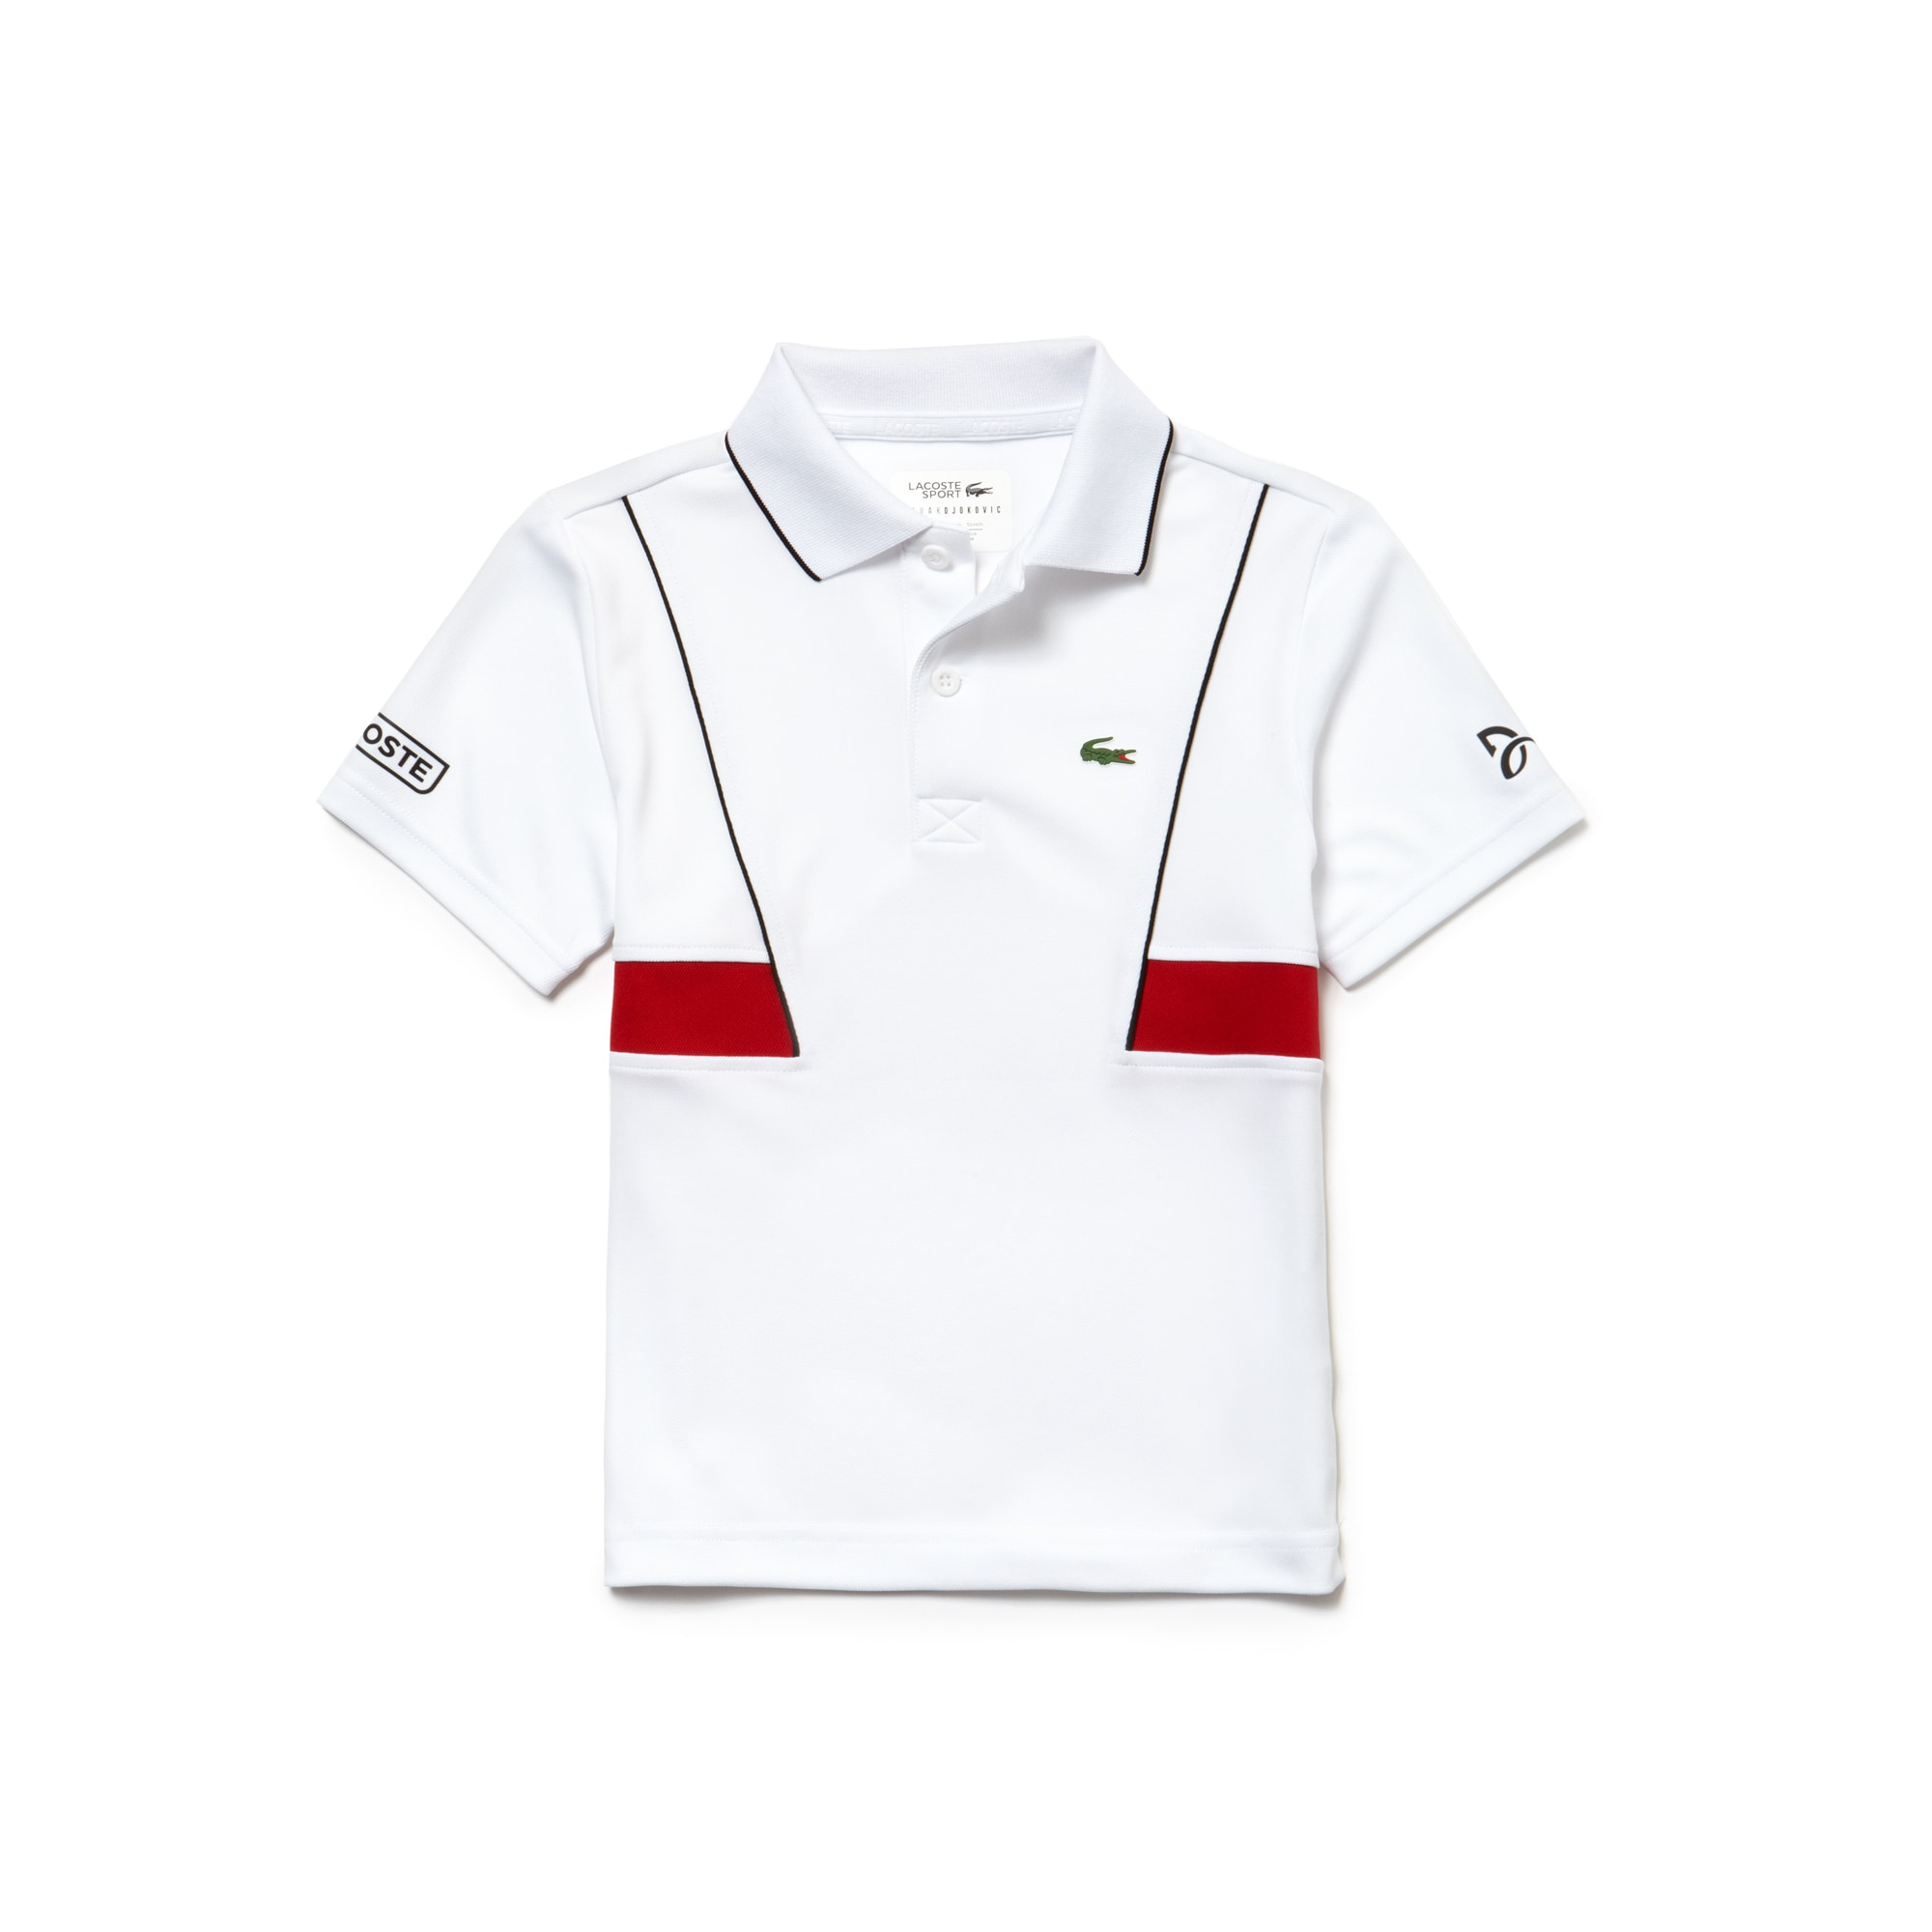 Jungen LACOSTE SPORT NOVAK DJOKOVIC COLLECTION Poloshirt